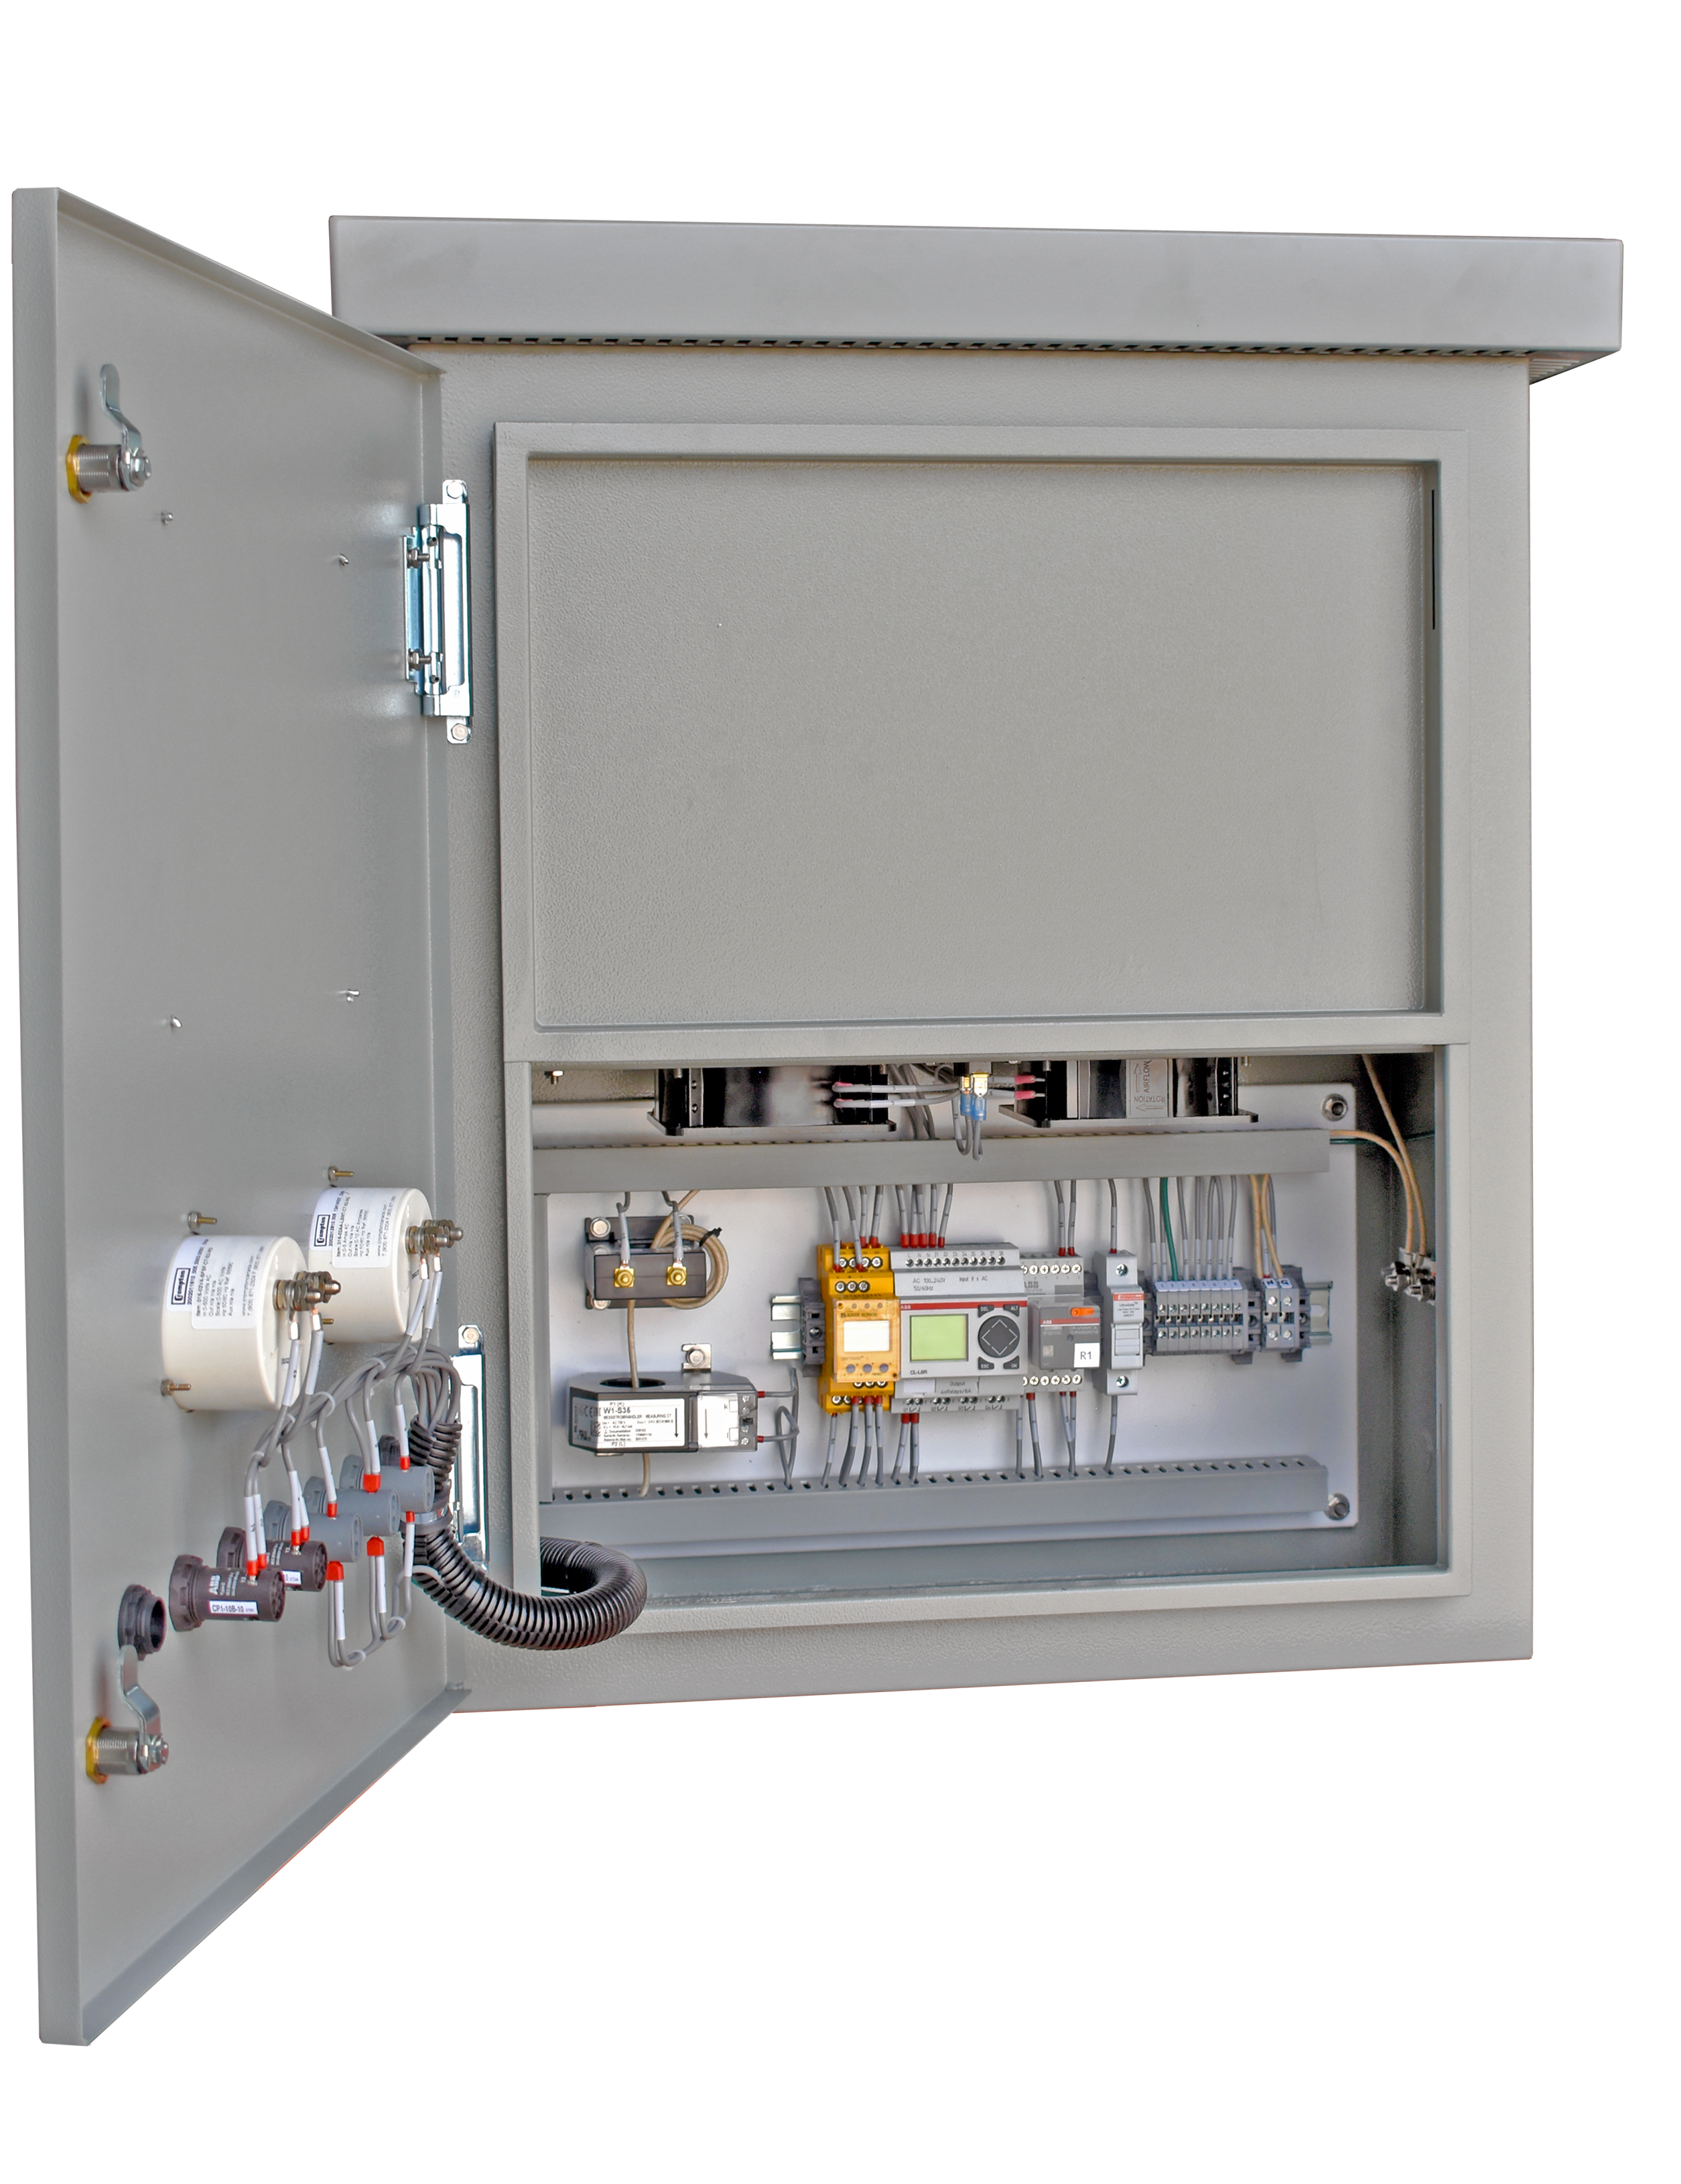 An open panel view of the Basic HRG in an HR1 enclosure with a resistor heat shield